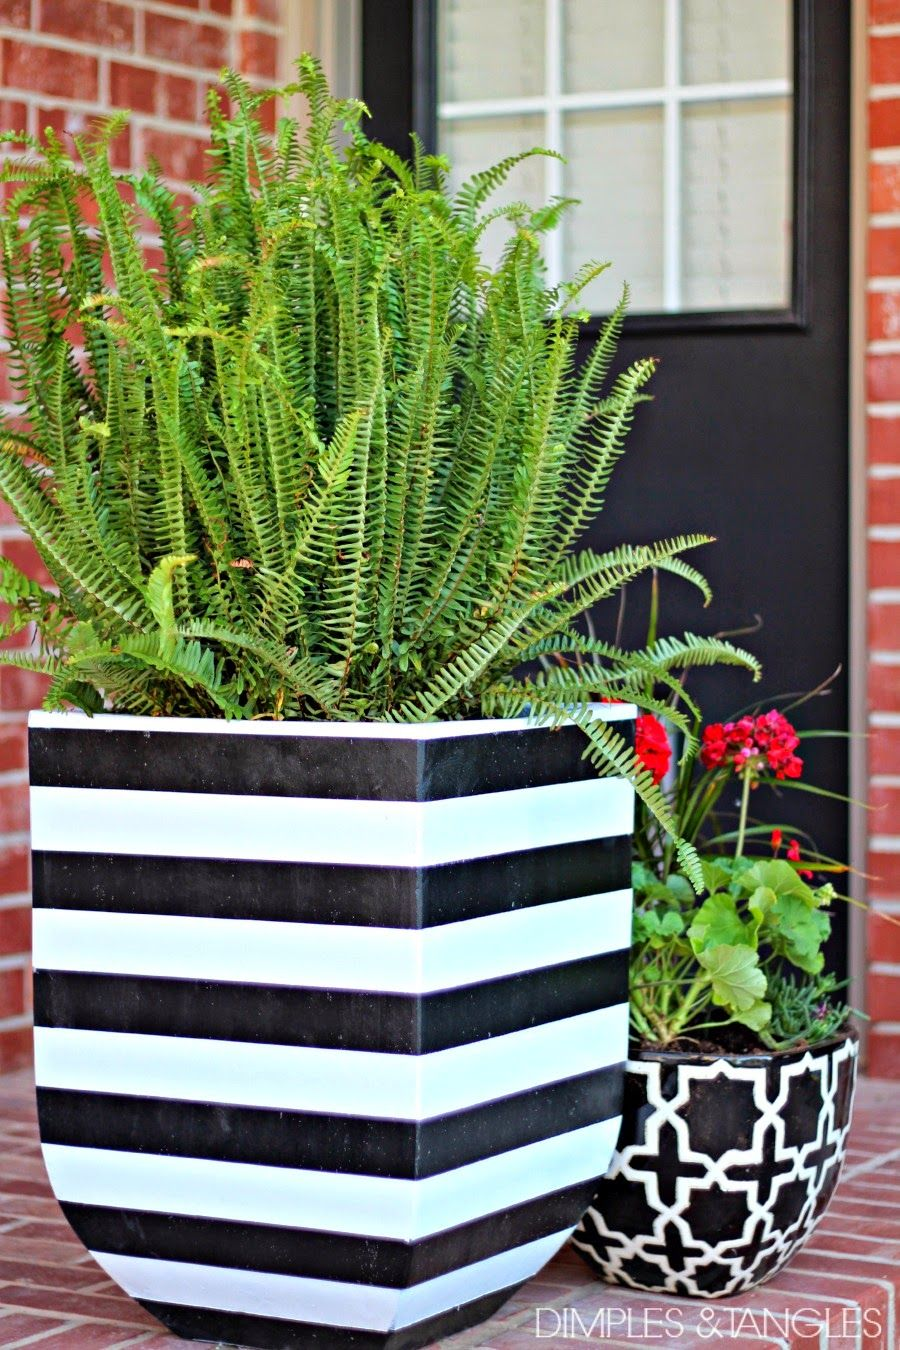 DIY BLACK AND WHITE STRIPED POTS | Flower, Planters and Gardens